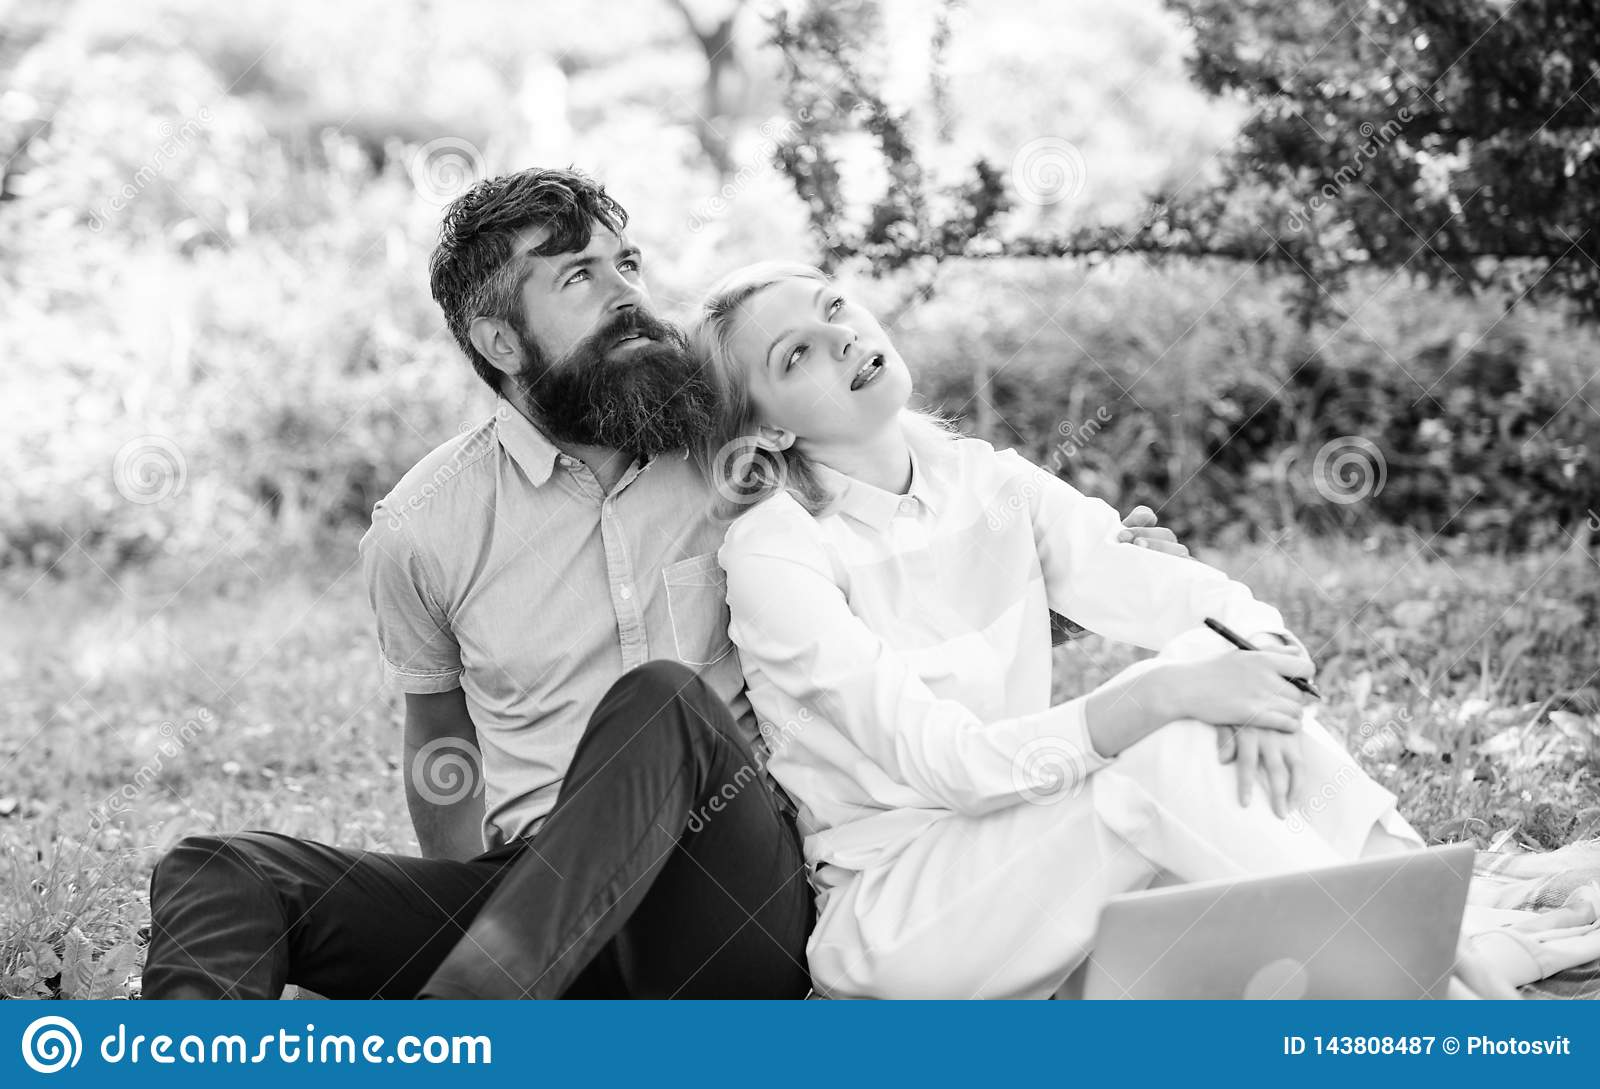 Modern online business. Couple youth spend leisure outdoors working with laptop. How to balance freelance and family